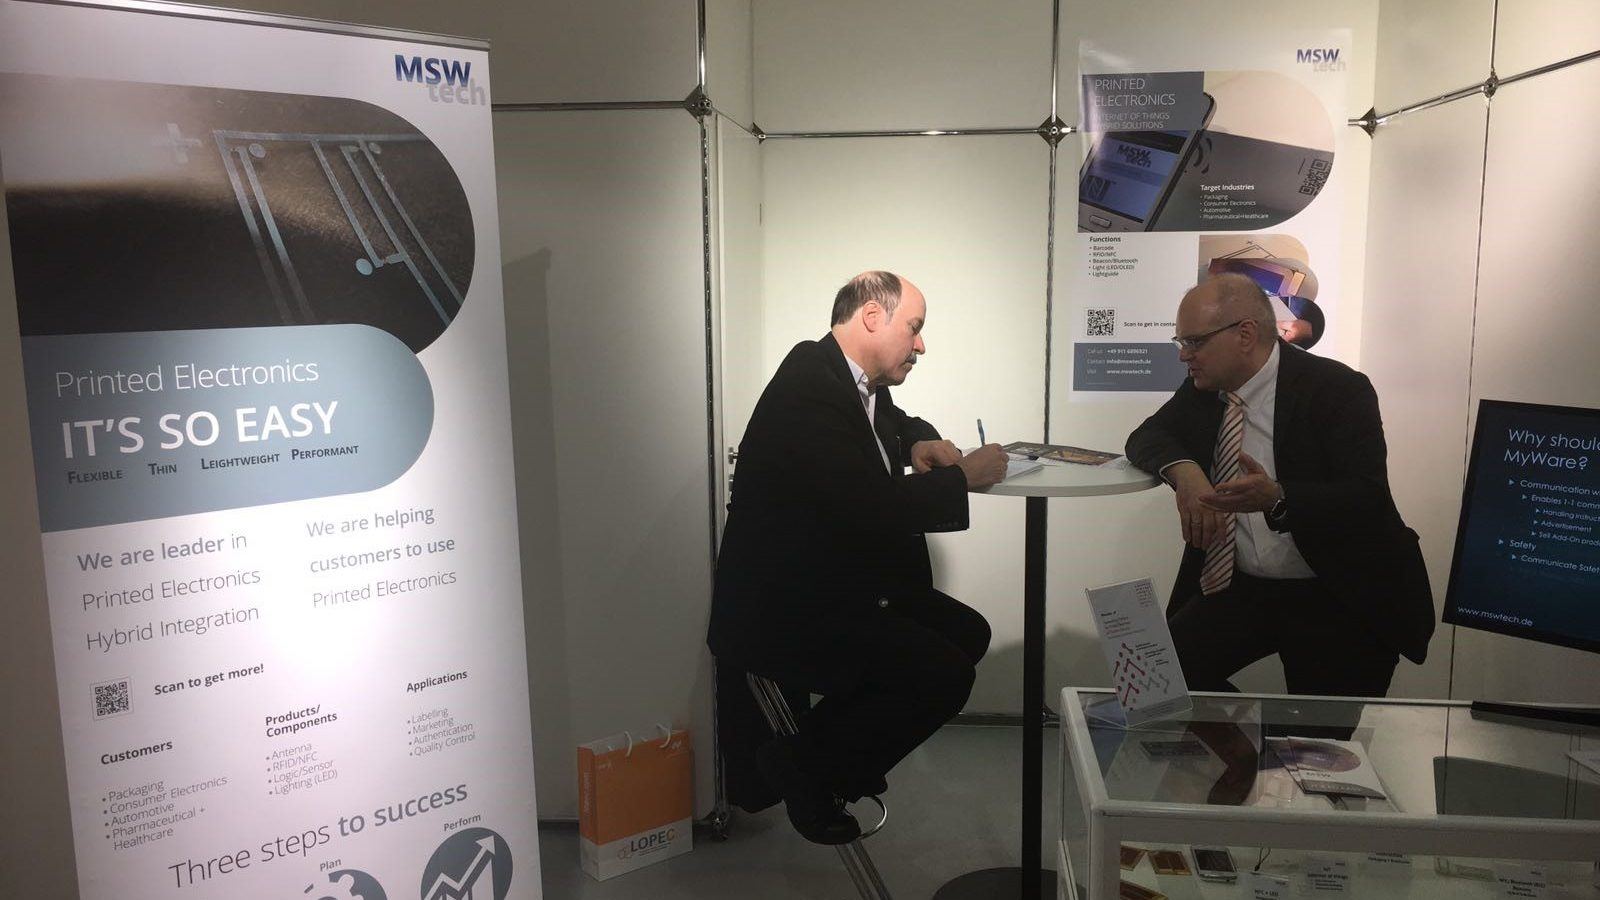 LOPEC 2017 Exhibition MSW